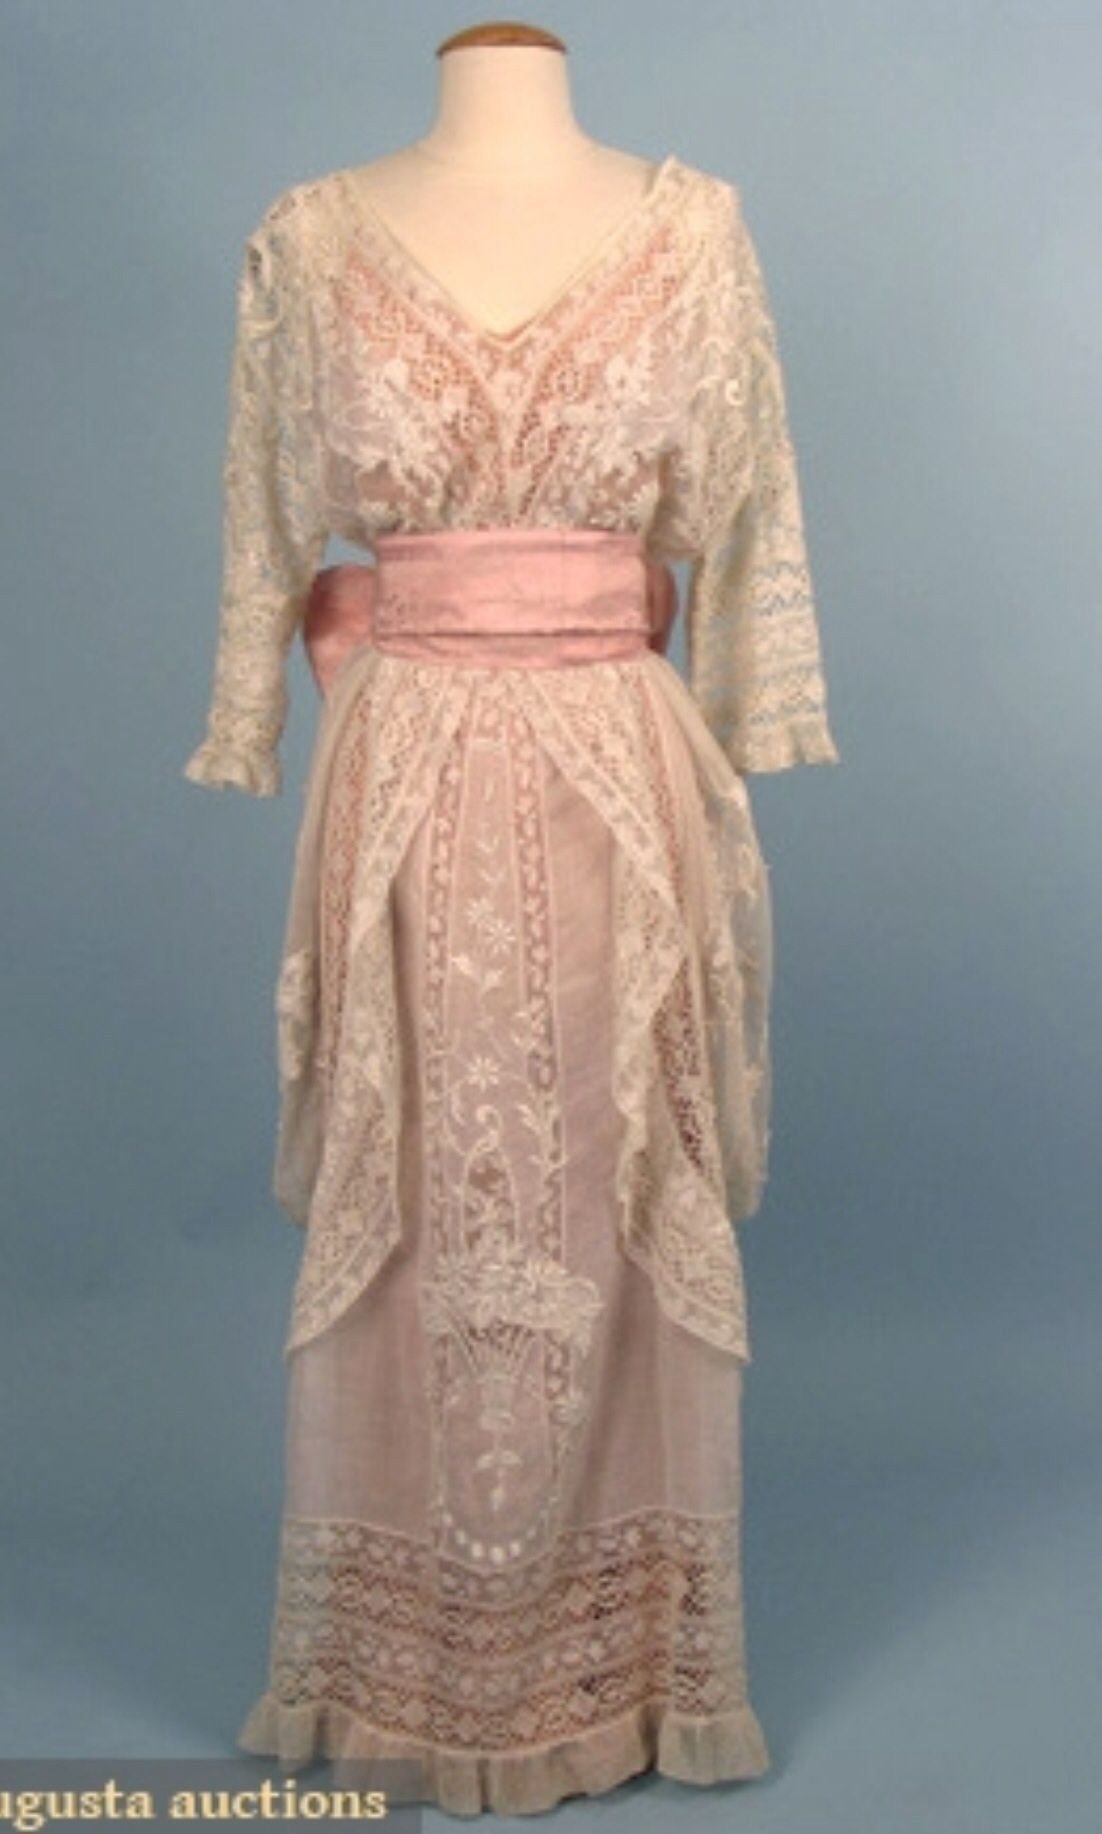 Lace hobbled style tea gown, c. 1913. -piece fashioned from various laces